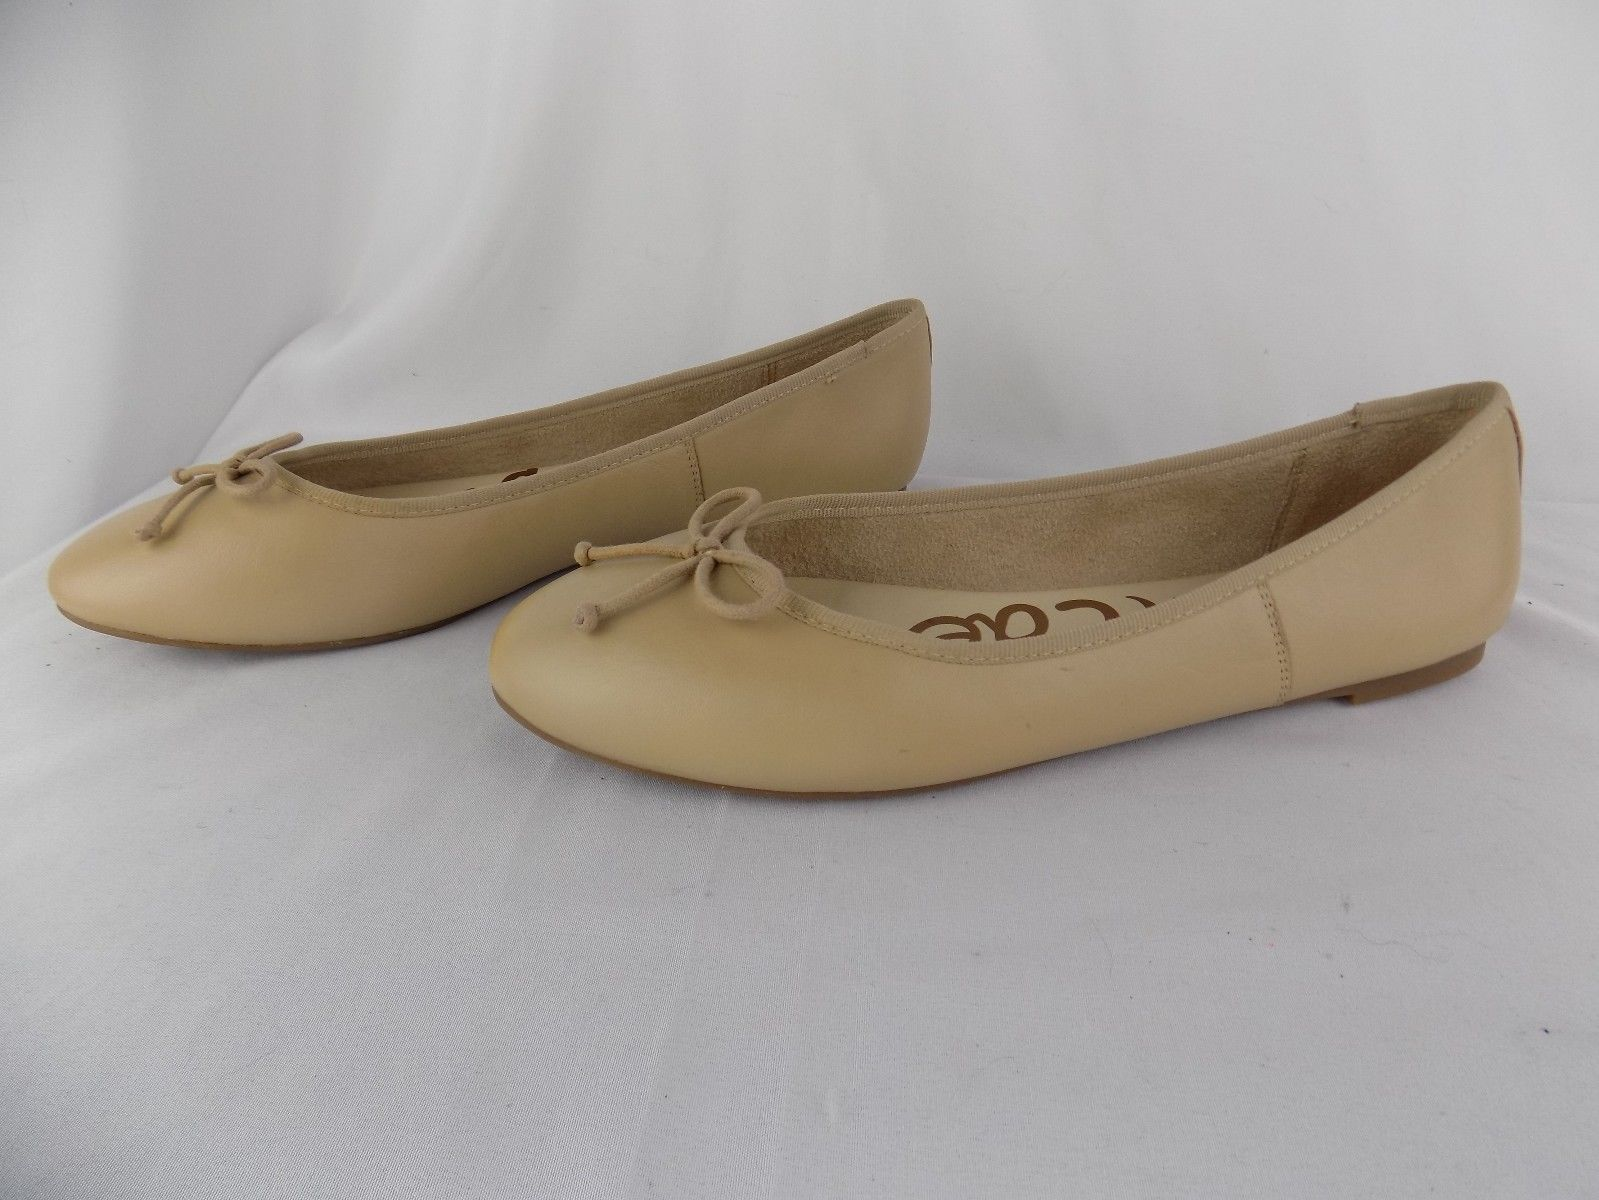 48b467a77 80.00 USD ❤ New Sam Edelman Women s Carrie Ballet Flat Slip On Shoes Nude  Sz 10